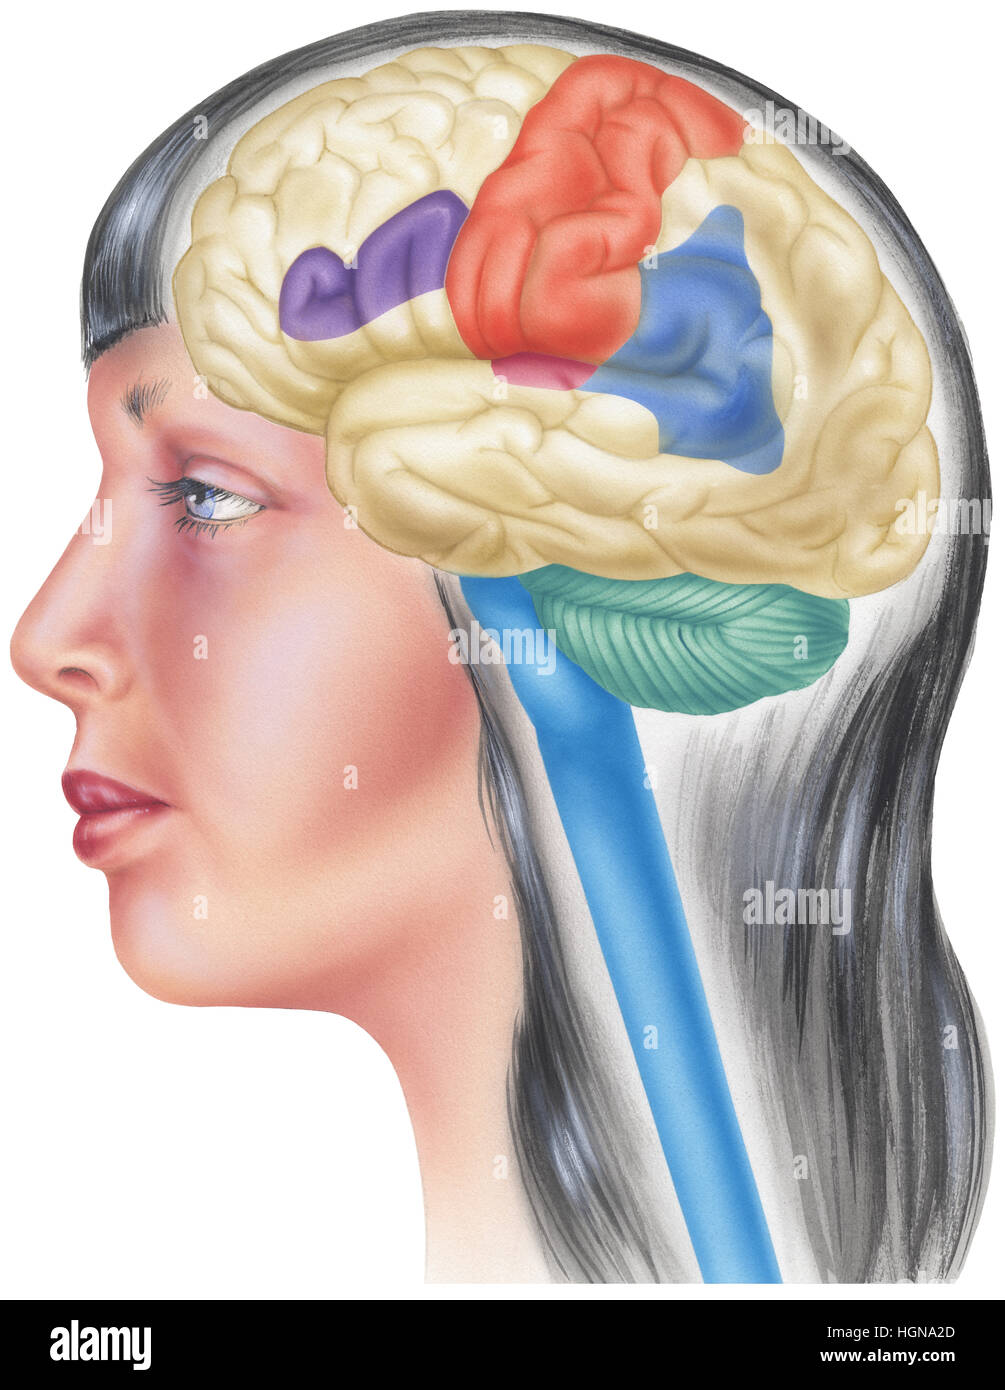 Side view of the human brain in the skull of a young woman. Shown are the parietal lobes, sensory cortex, angular - Stock Image